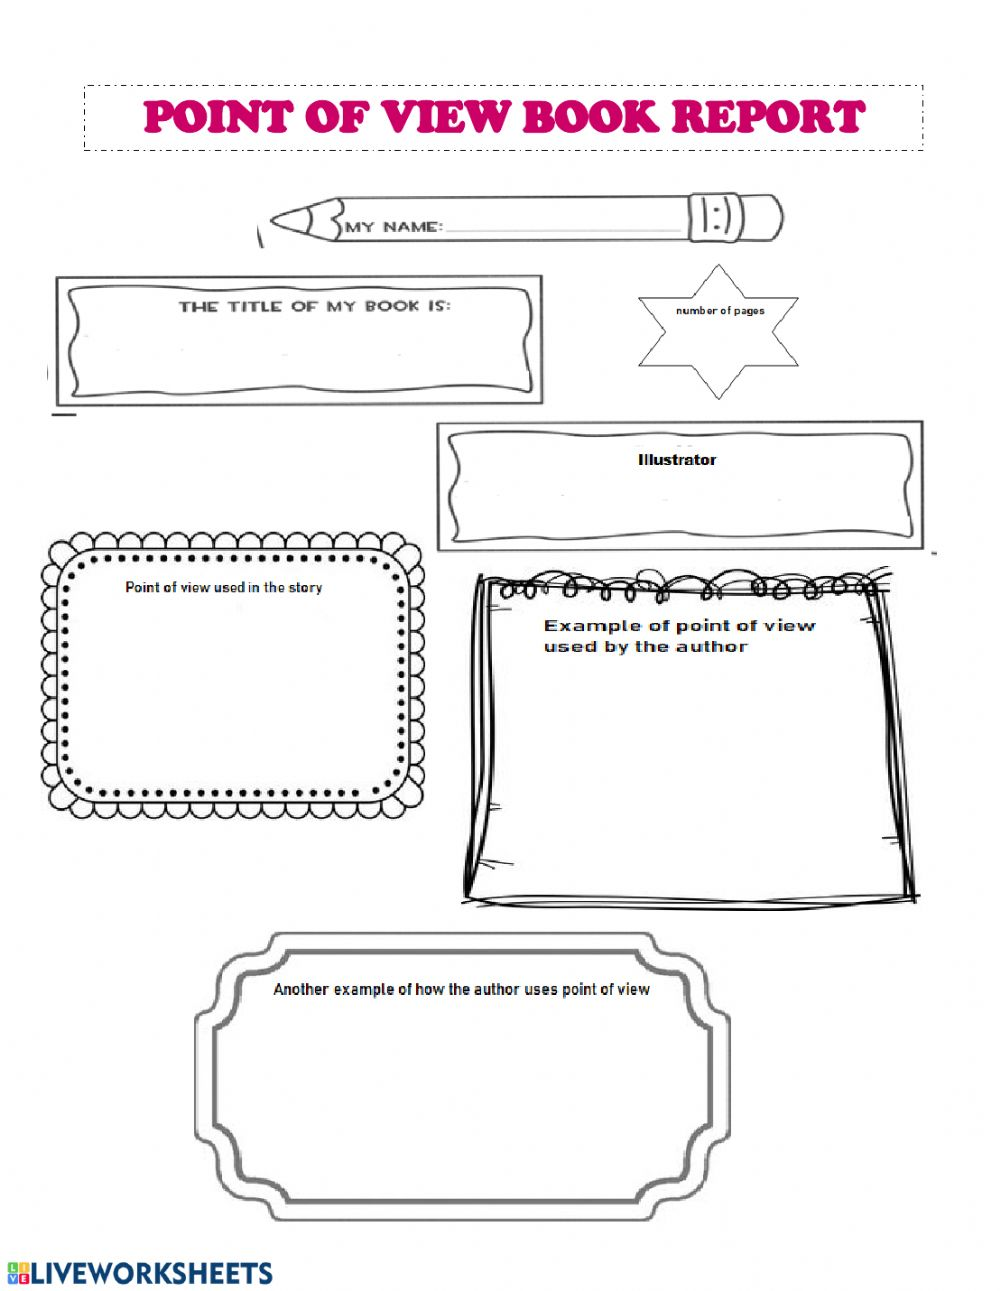 hight resolution of Point of View Book Report worksheet